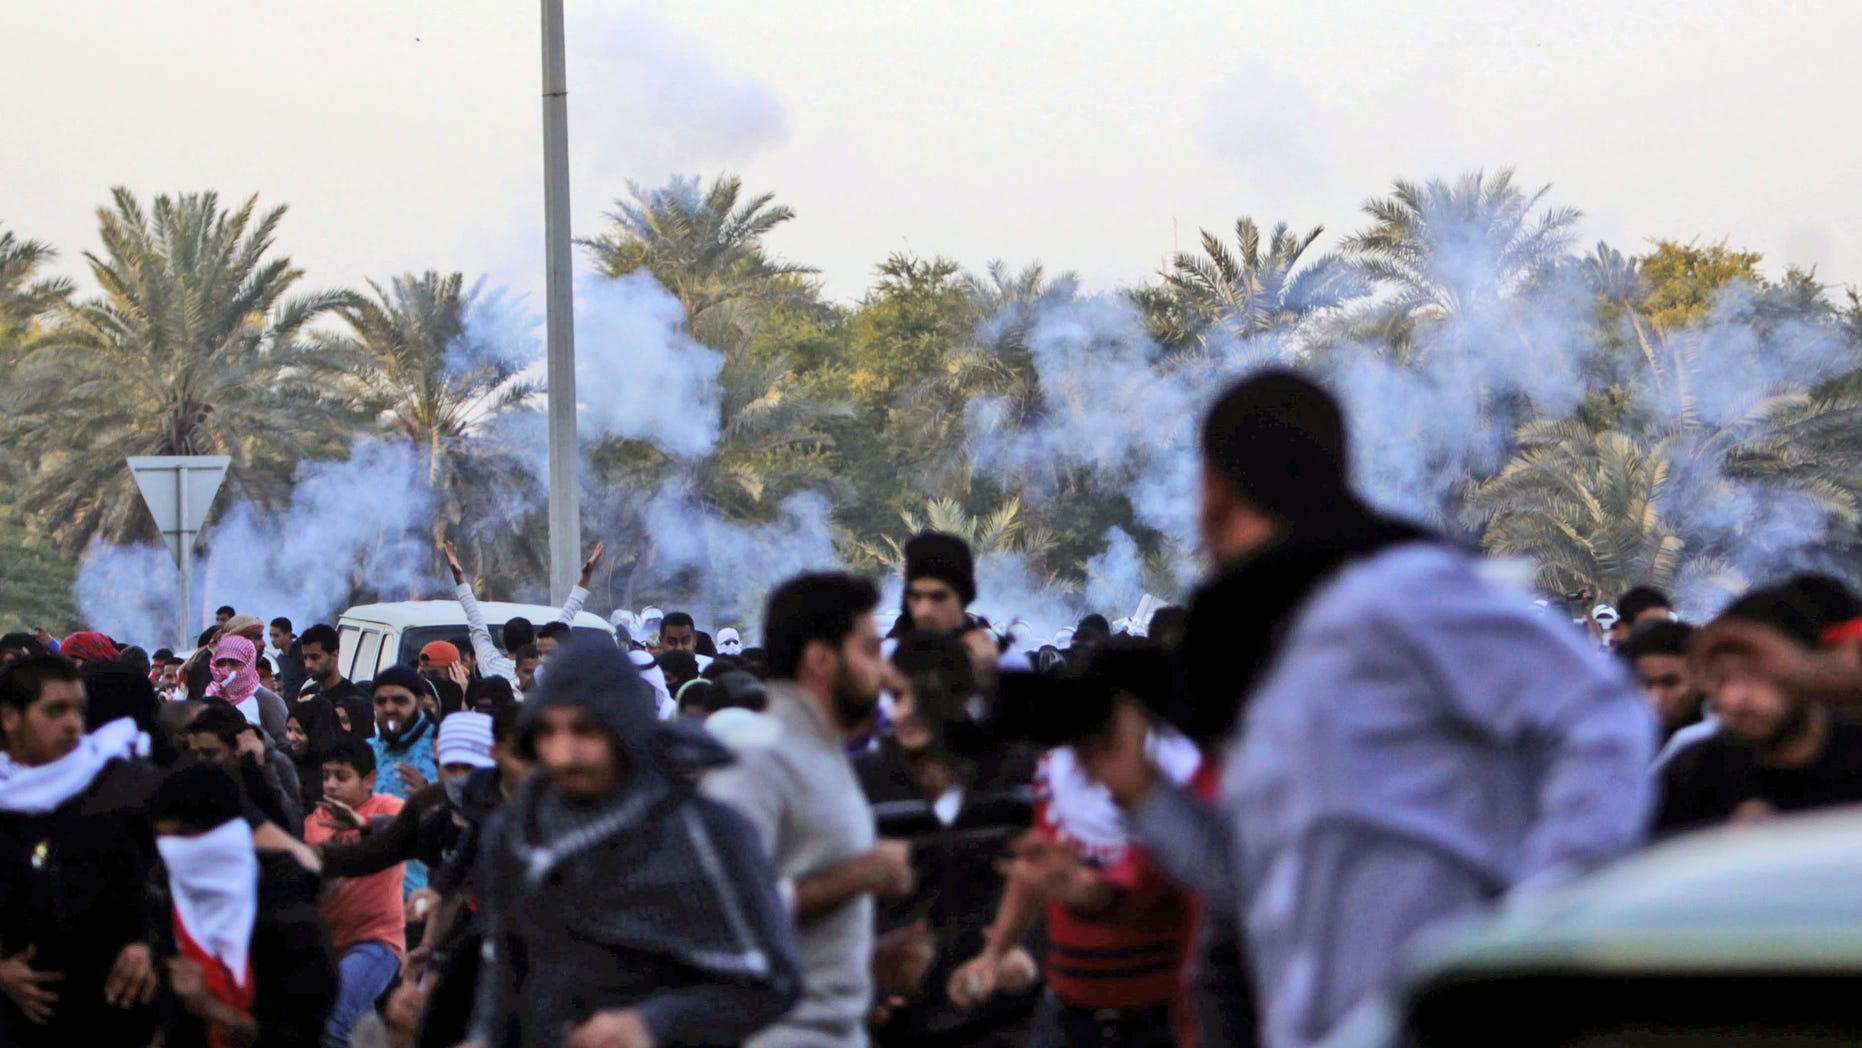 DEc. 23, 2011: Anti-government protesters run as riot police begin firing tear gas.